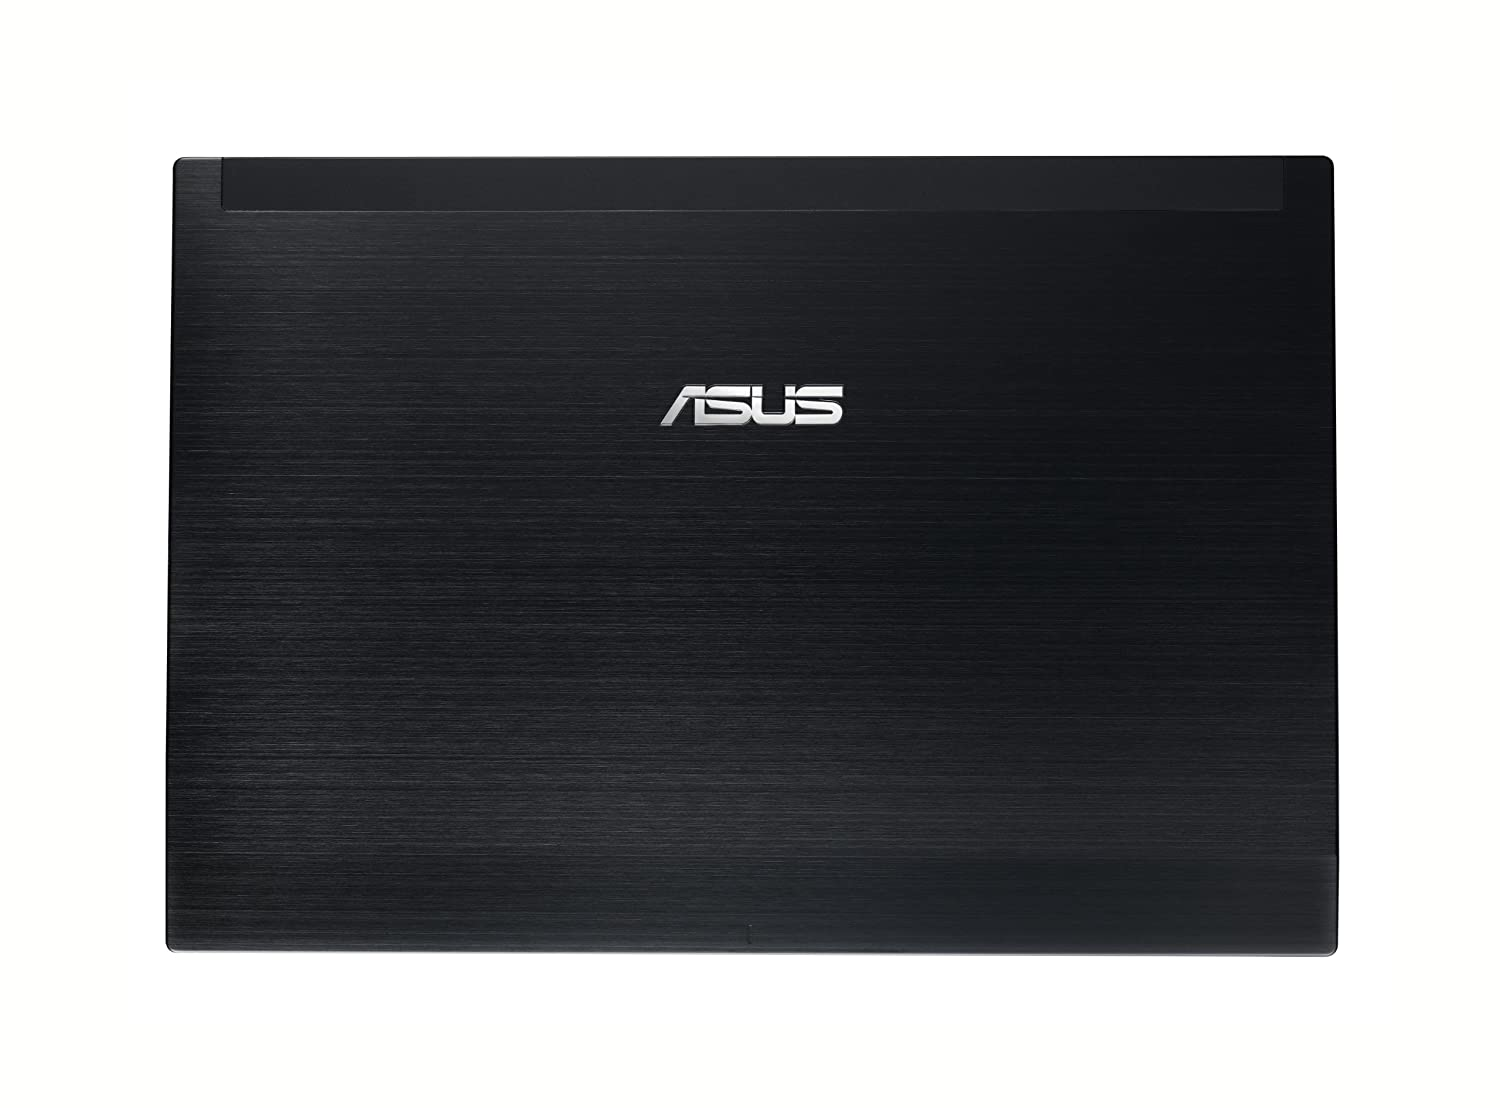 ASUS B53S NOTEBOOK POWER RECOVER WINDOWS 7 DRIVER